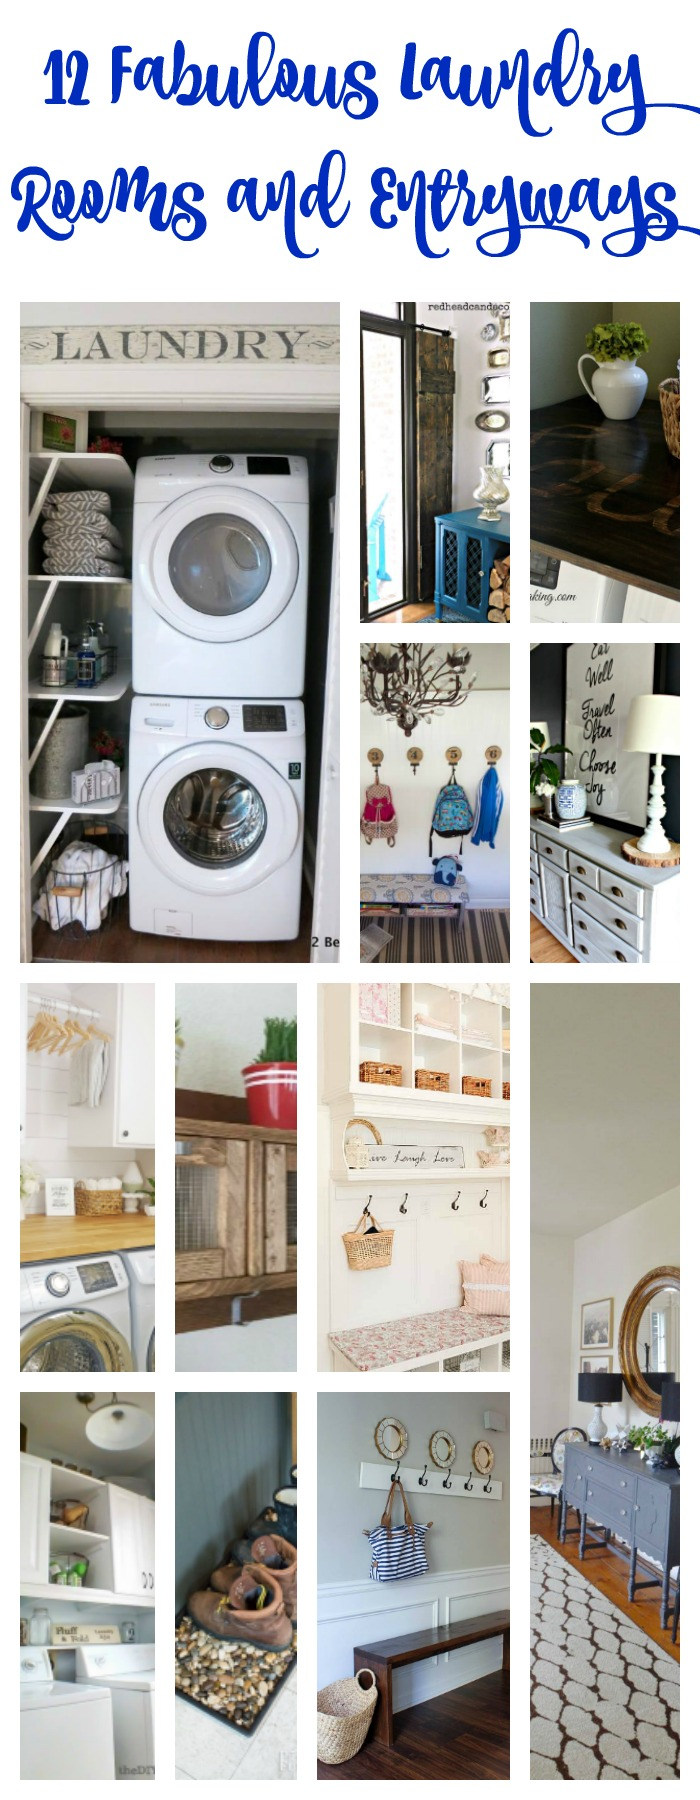 12 Laundry Room And Entry Ideas Diy Housewives Series 2